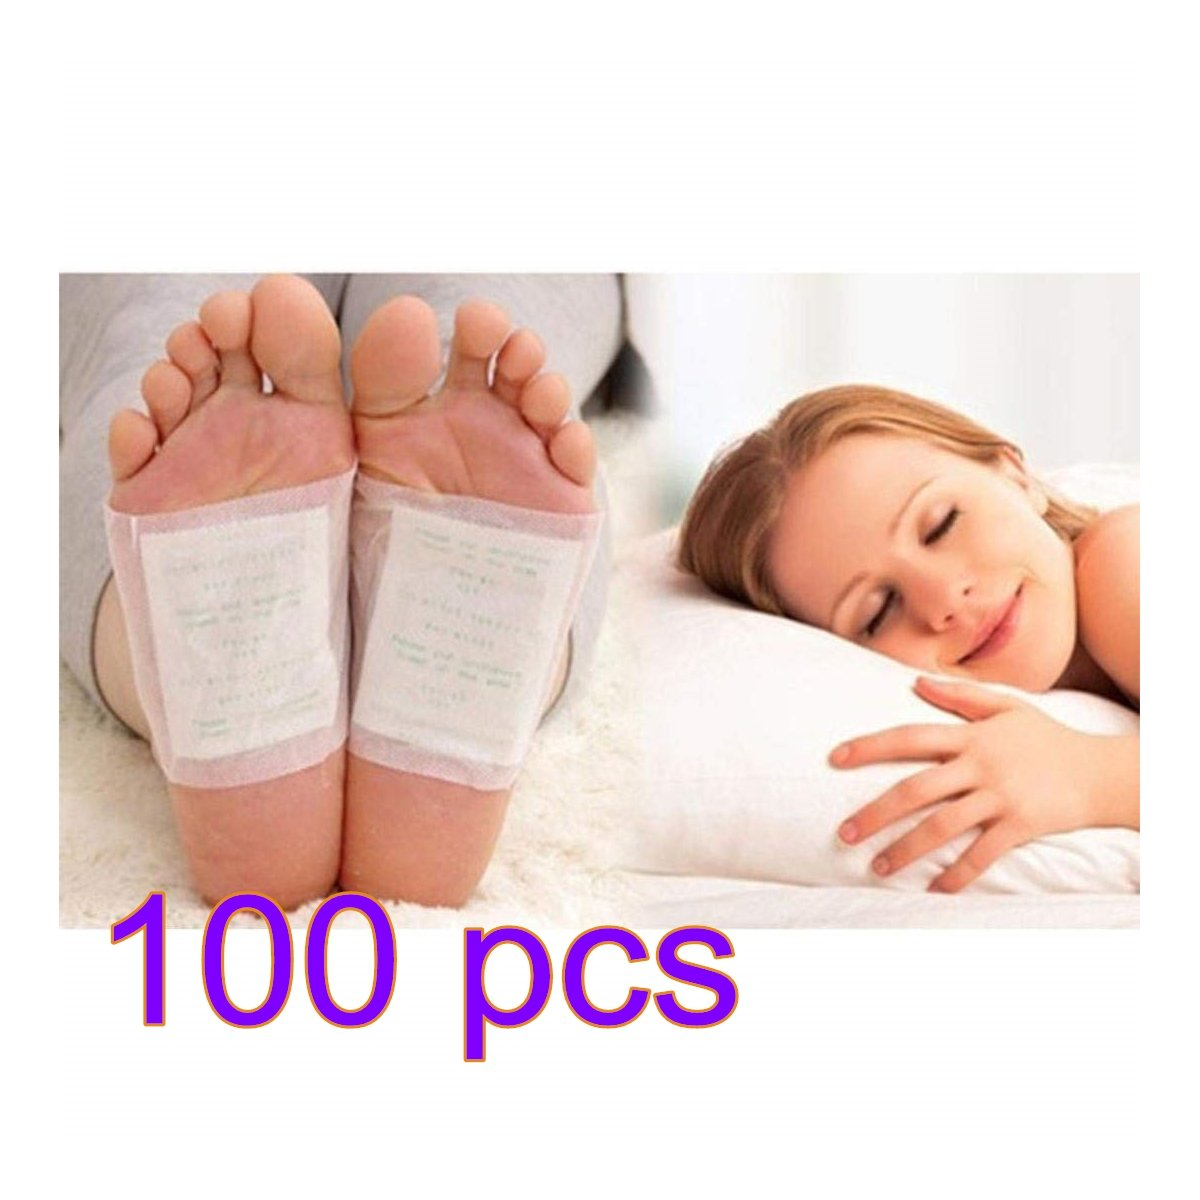 Dasuke 100 Pcs Detox Foot Patches Detox Foot Pads Detoxify Toxins Pain Relief Health Care Patches Cleansing Detox Foot Pads Stress Relief